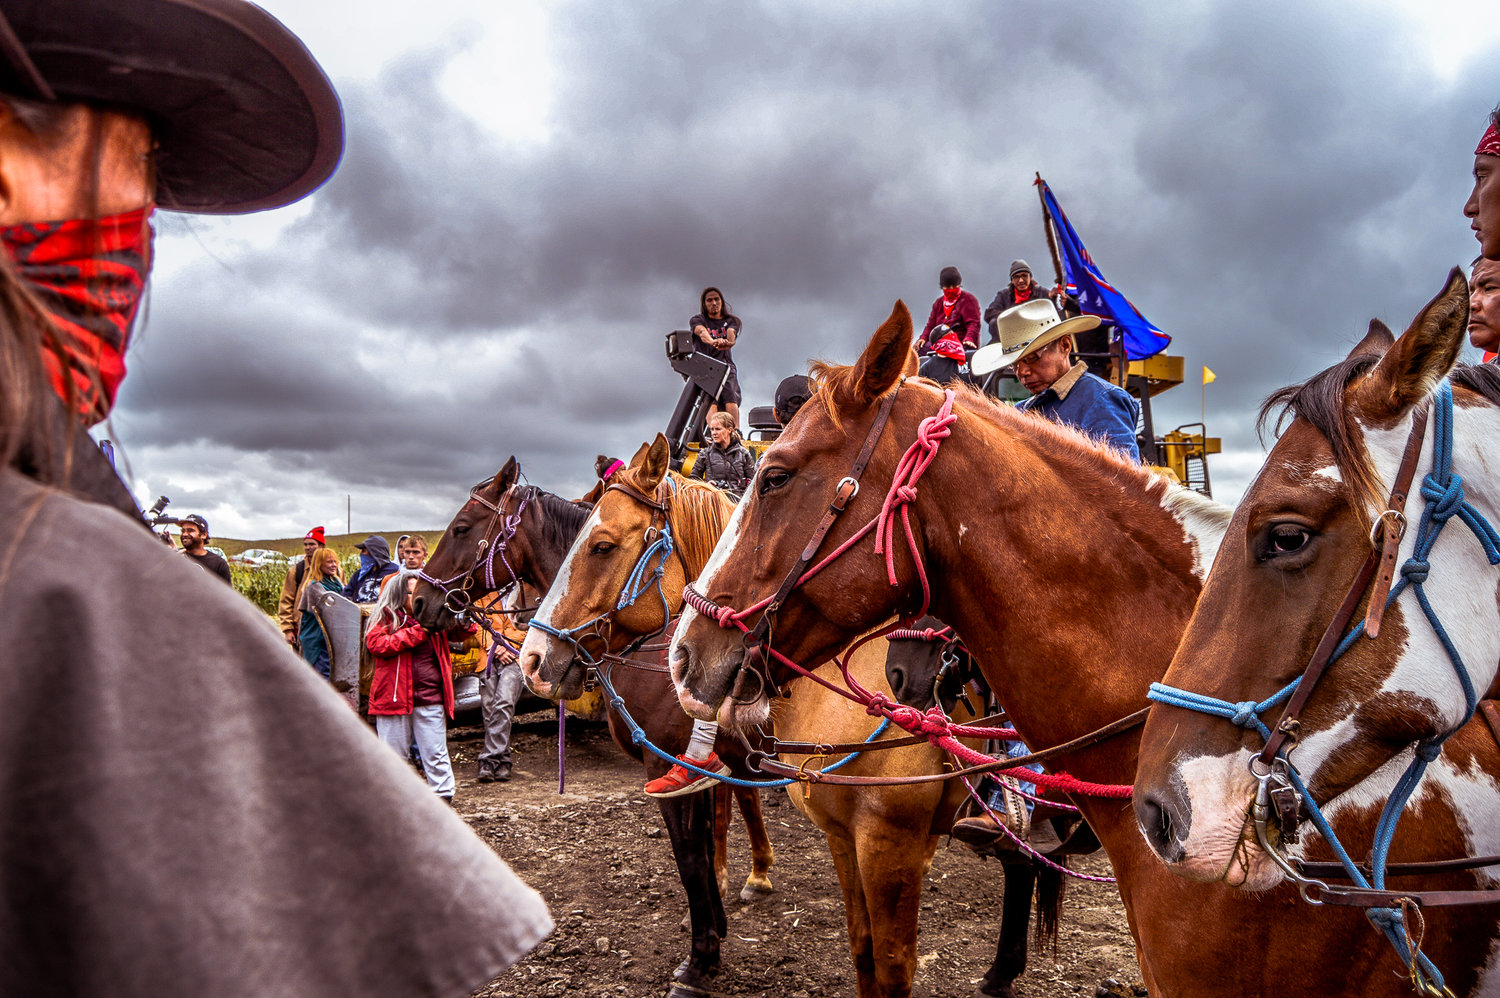 Gyasi Ross: Doing your part to ensure #NoDAPL keeps on winning